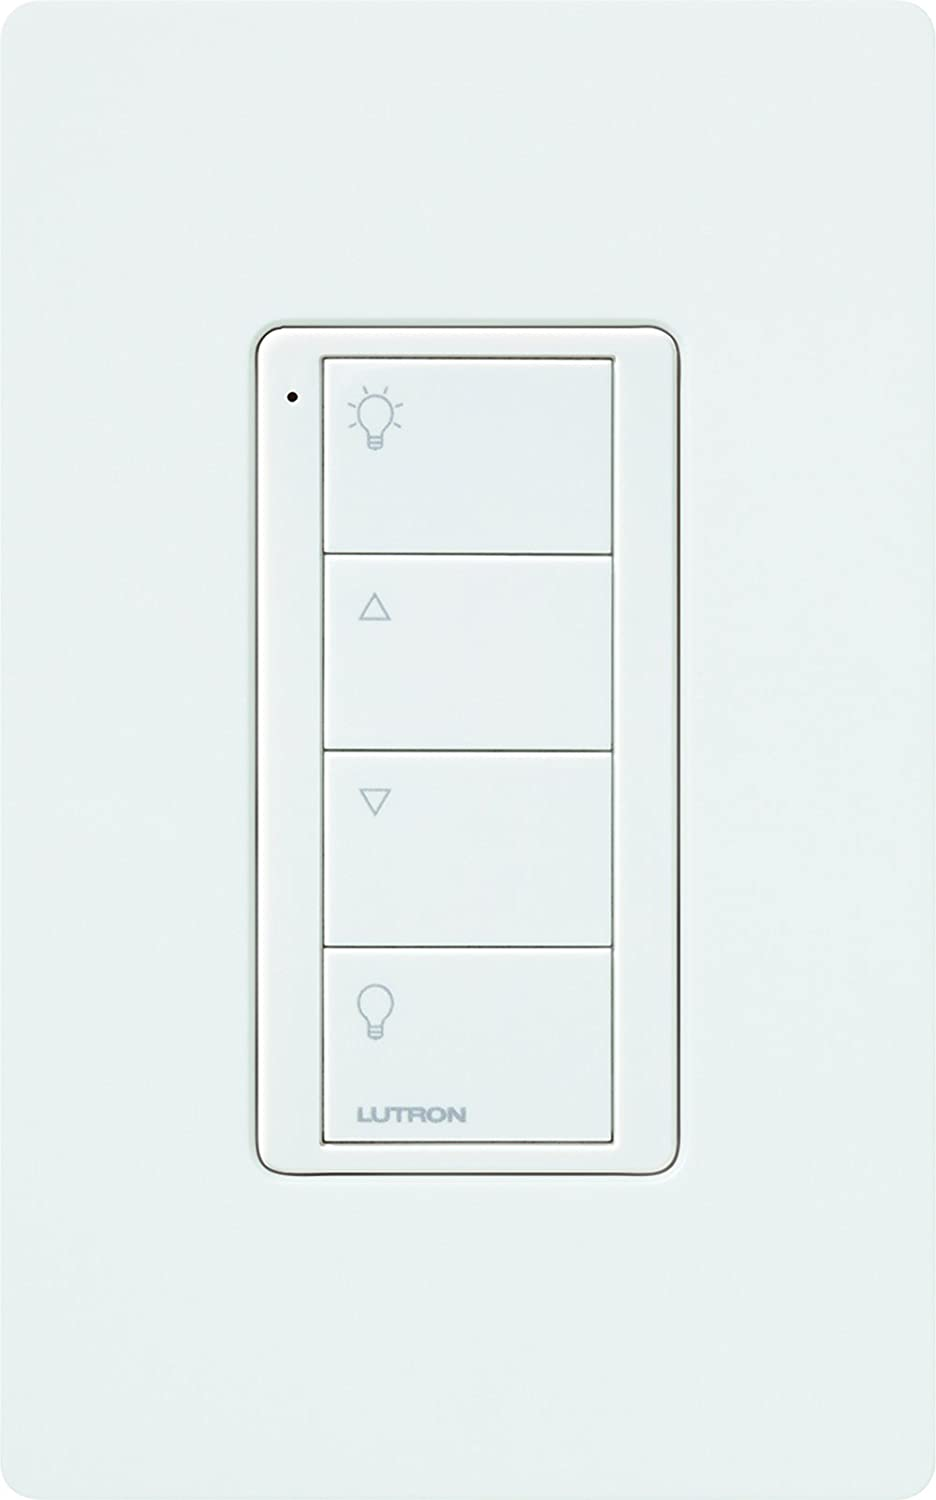 Lutron Lzl 4b Wh L01 Connected Bulb Remote Home Electrical Wiring Dimmer Switch